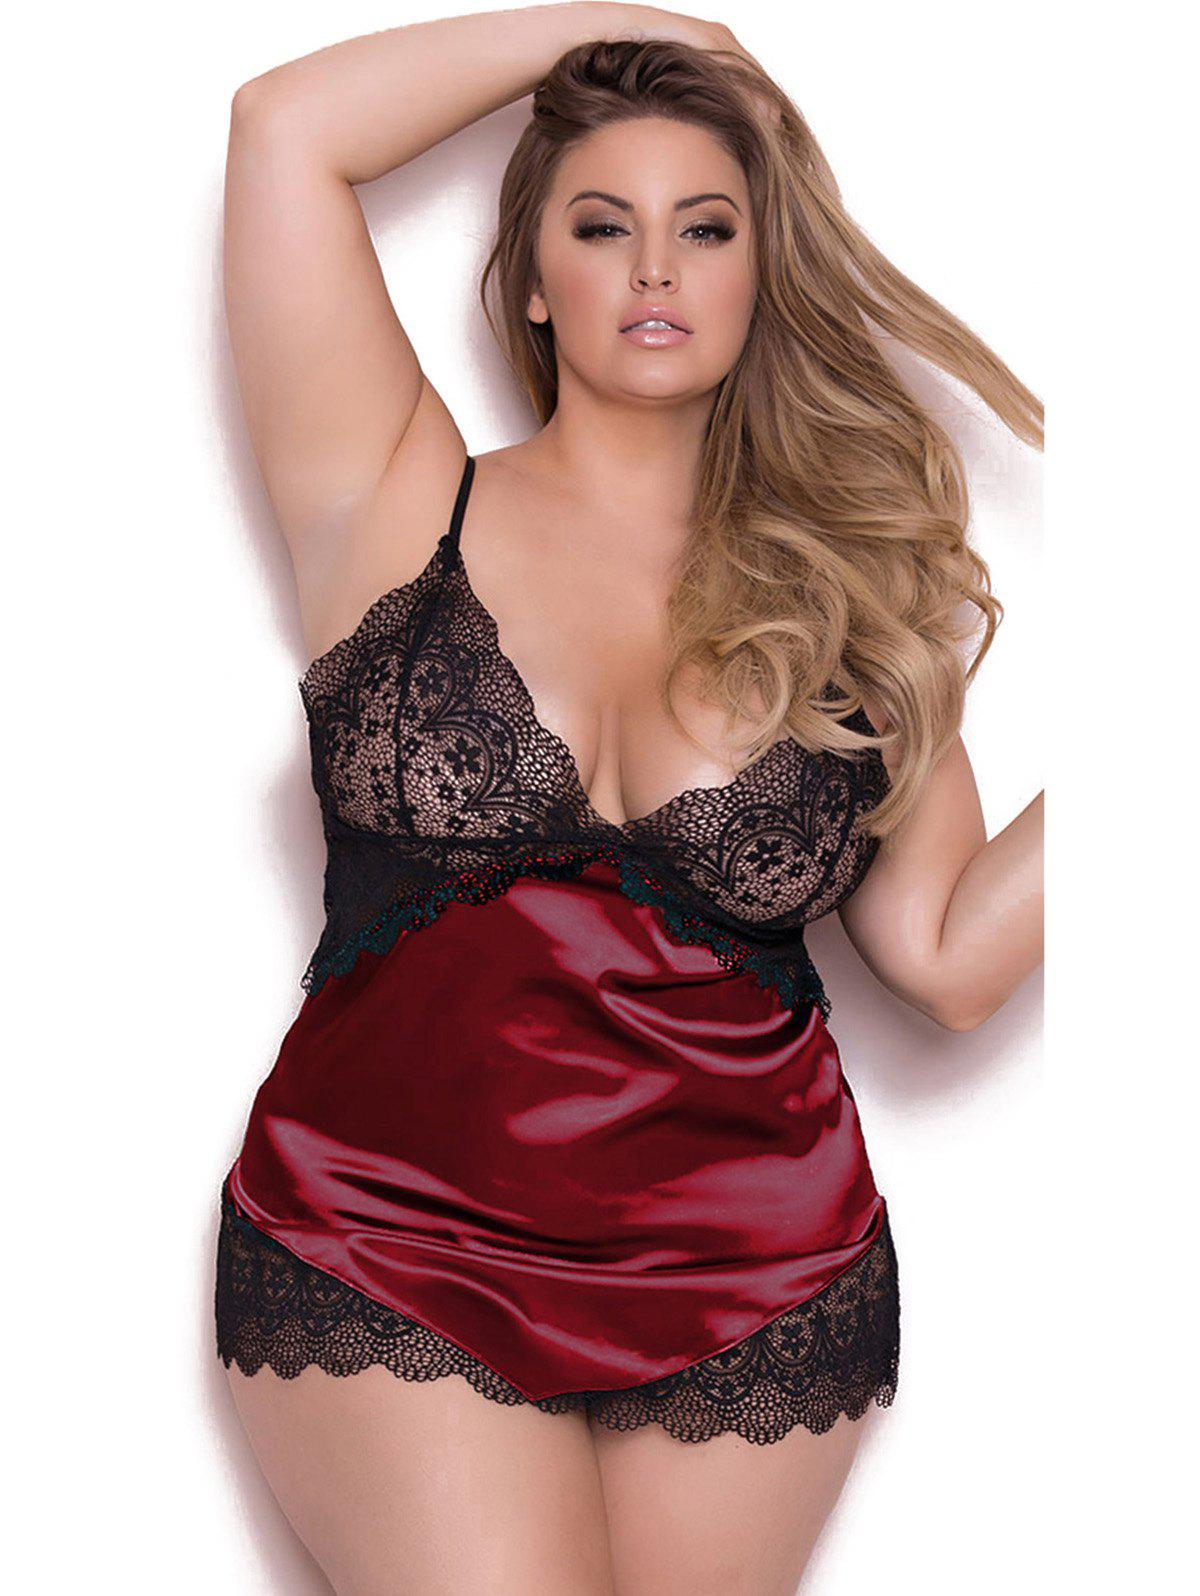 f9228b460 29% OFF  Adjustable Shoulder Straps Plus Size Babydoll Lingeries ...